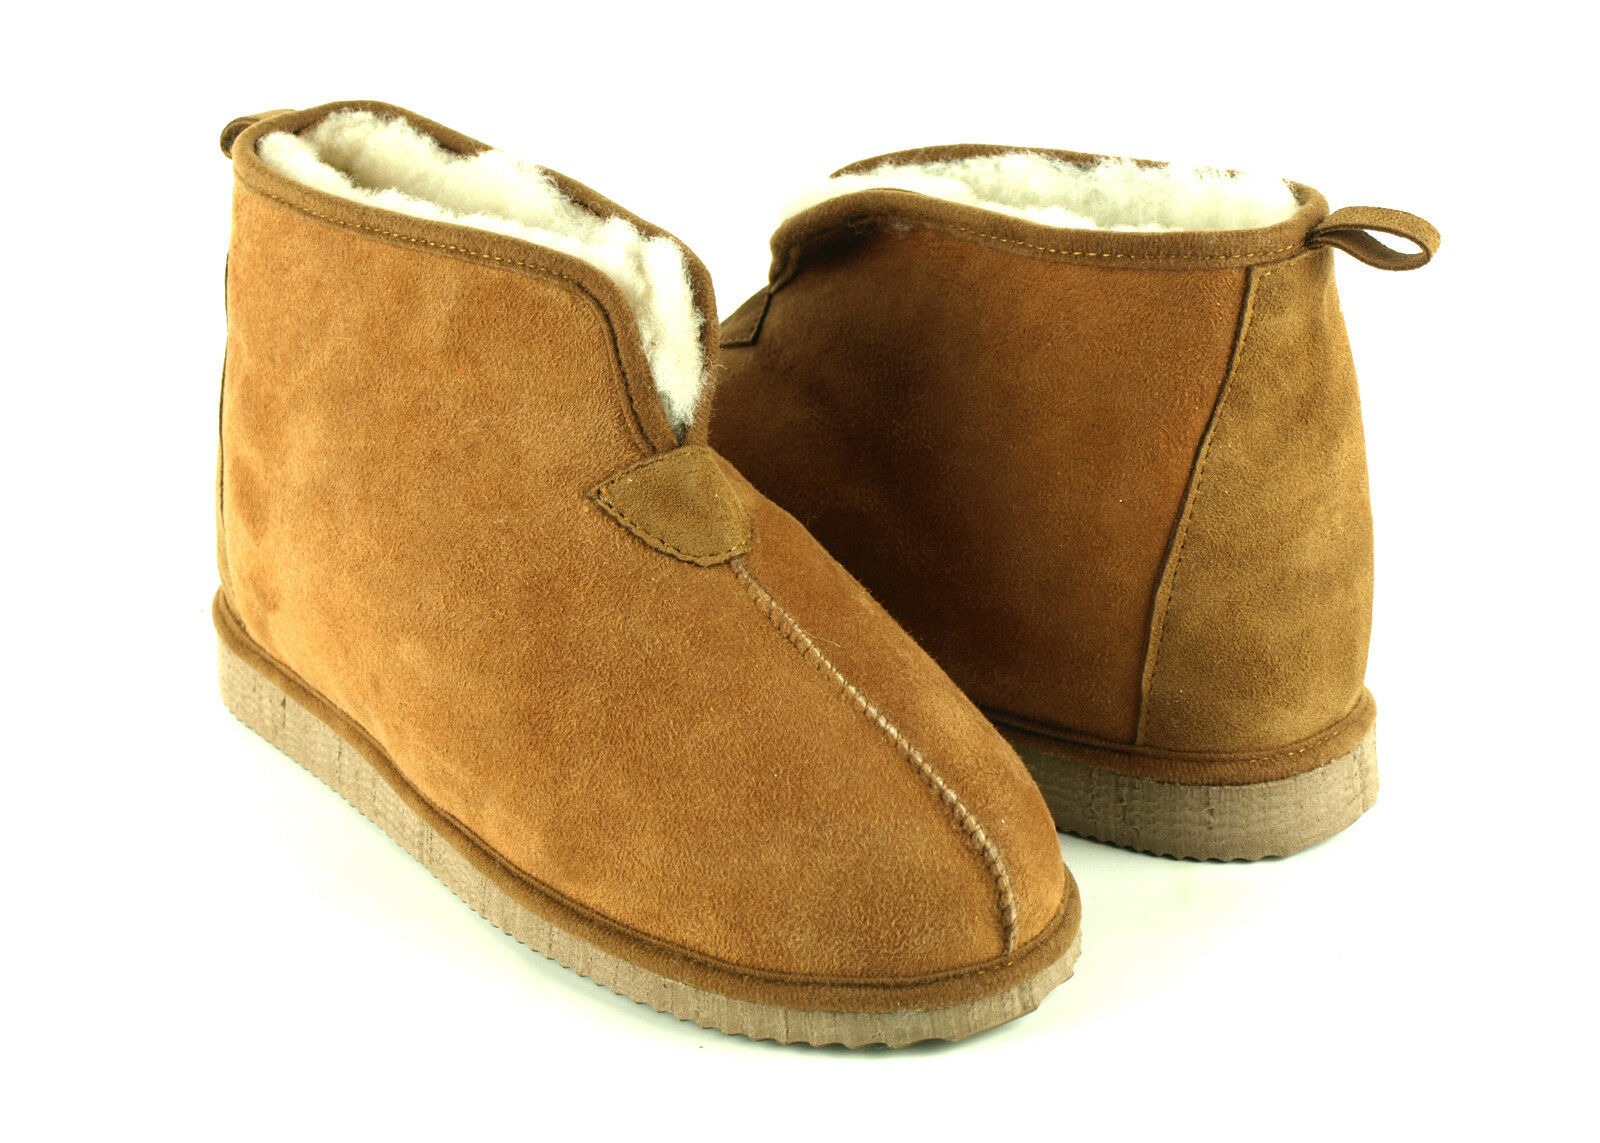 Mens Womens Portuguese Merino Sheepskin Slippers Ankle Boots Vegetable Tanned